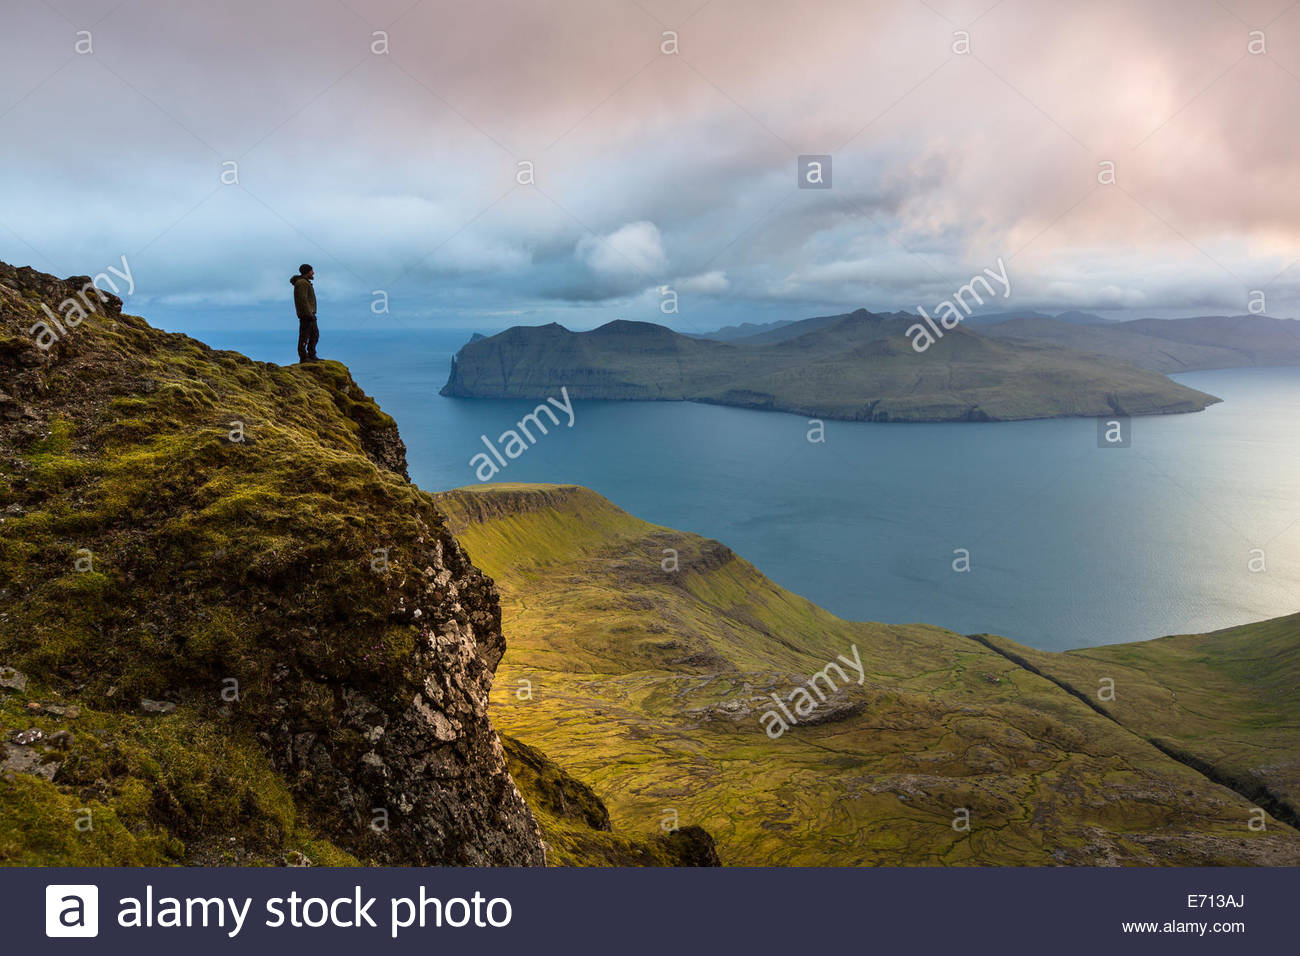 Sornfelli, Vagar island in background, Faroe Islands, Denmark - Stock Image